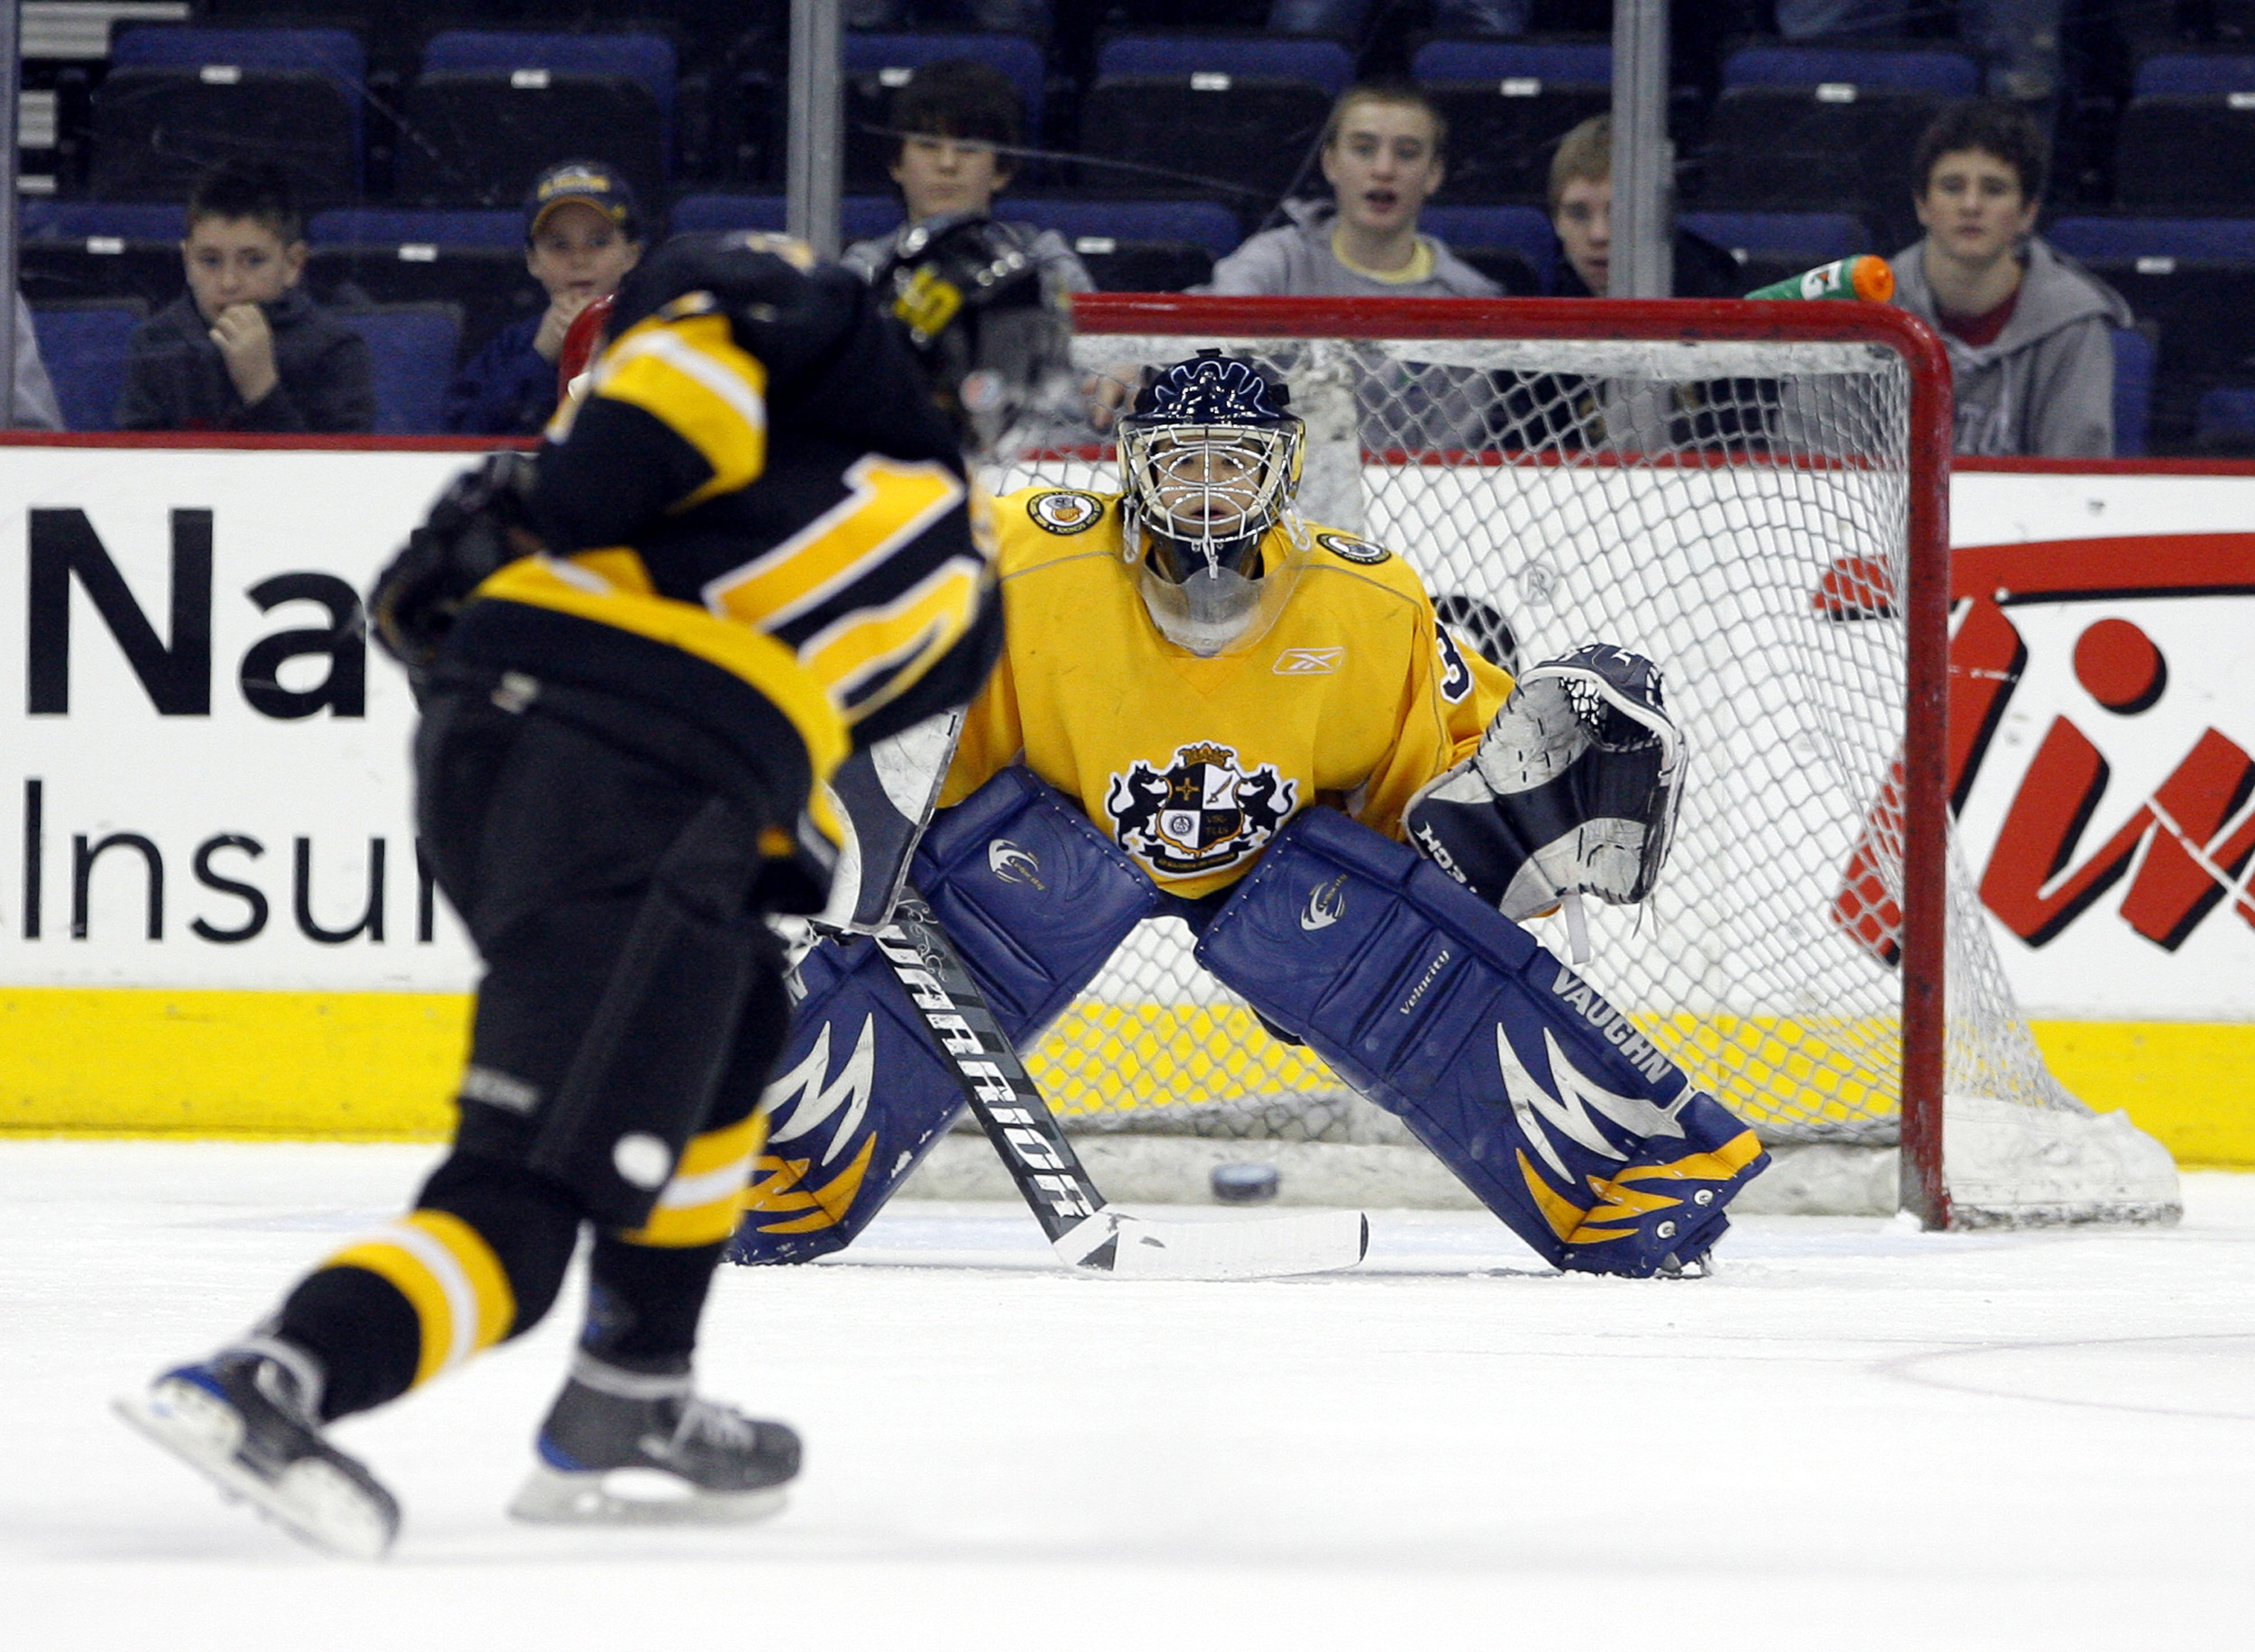 OH H.S: Quick Look At The Top Teams And Players For This Year's High School Hockey Season Around Northeast Ohio.